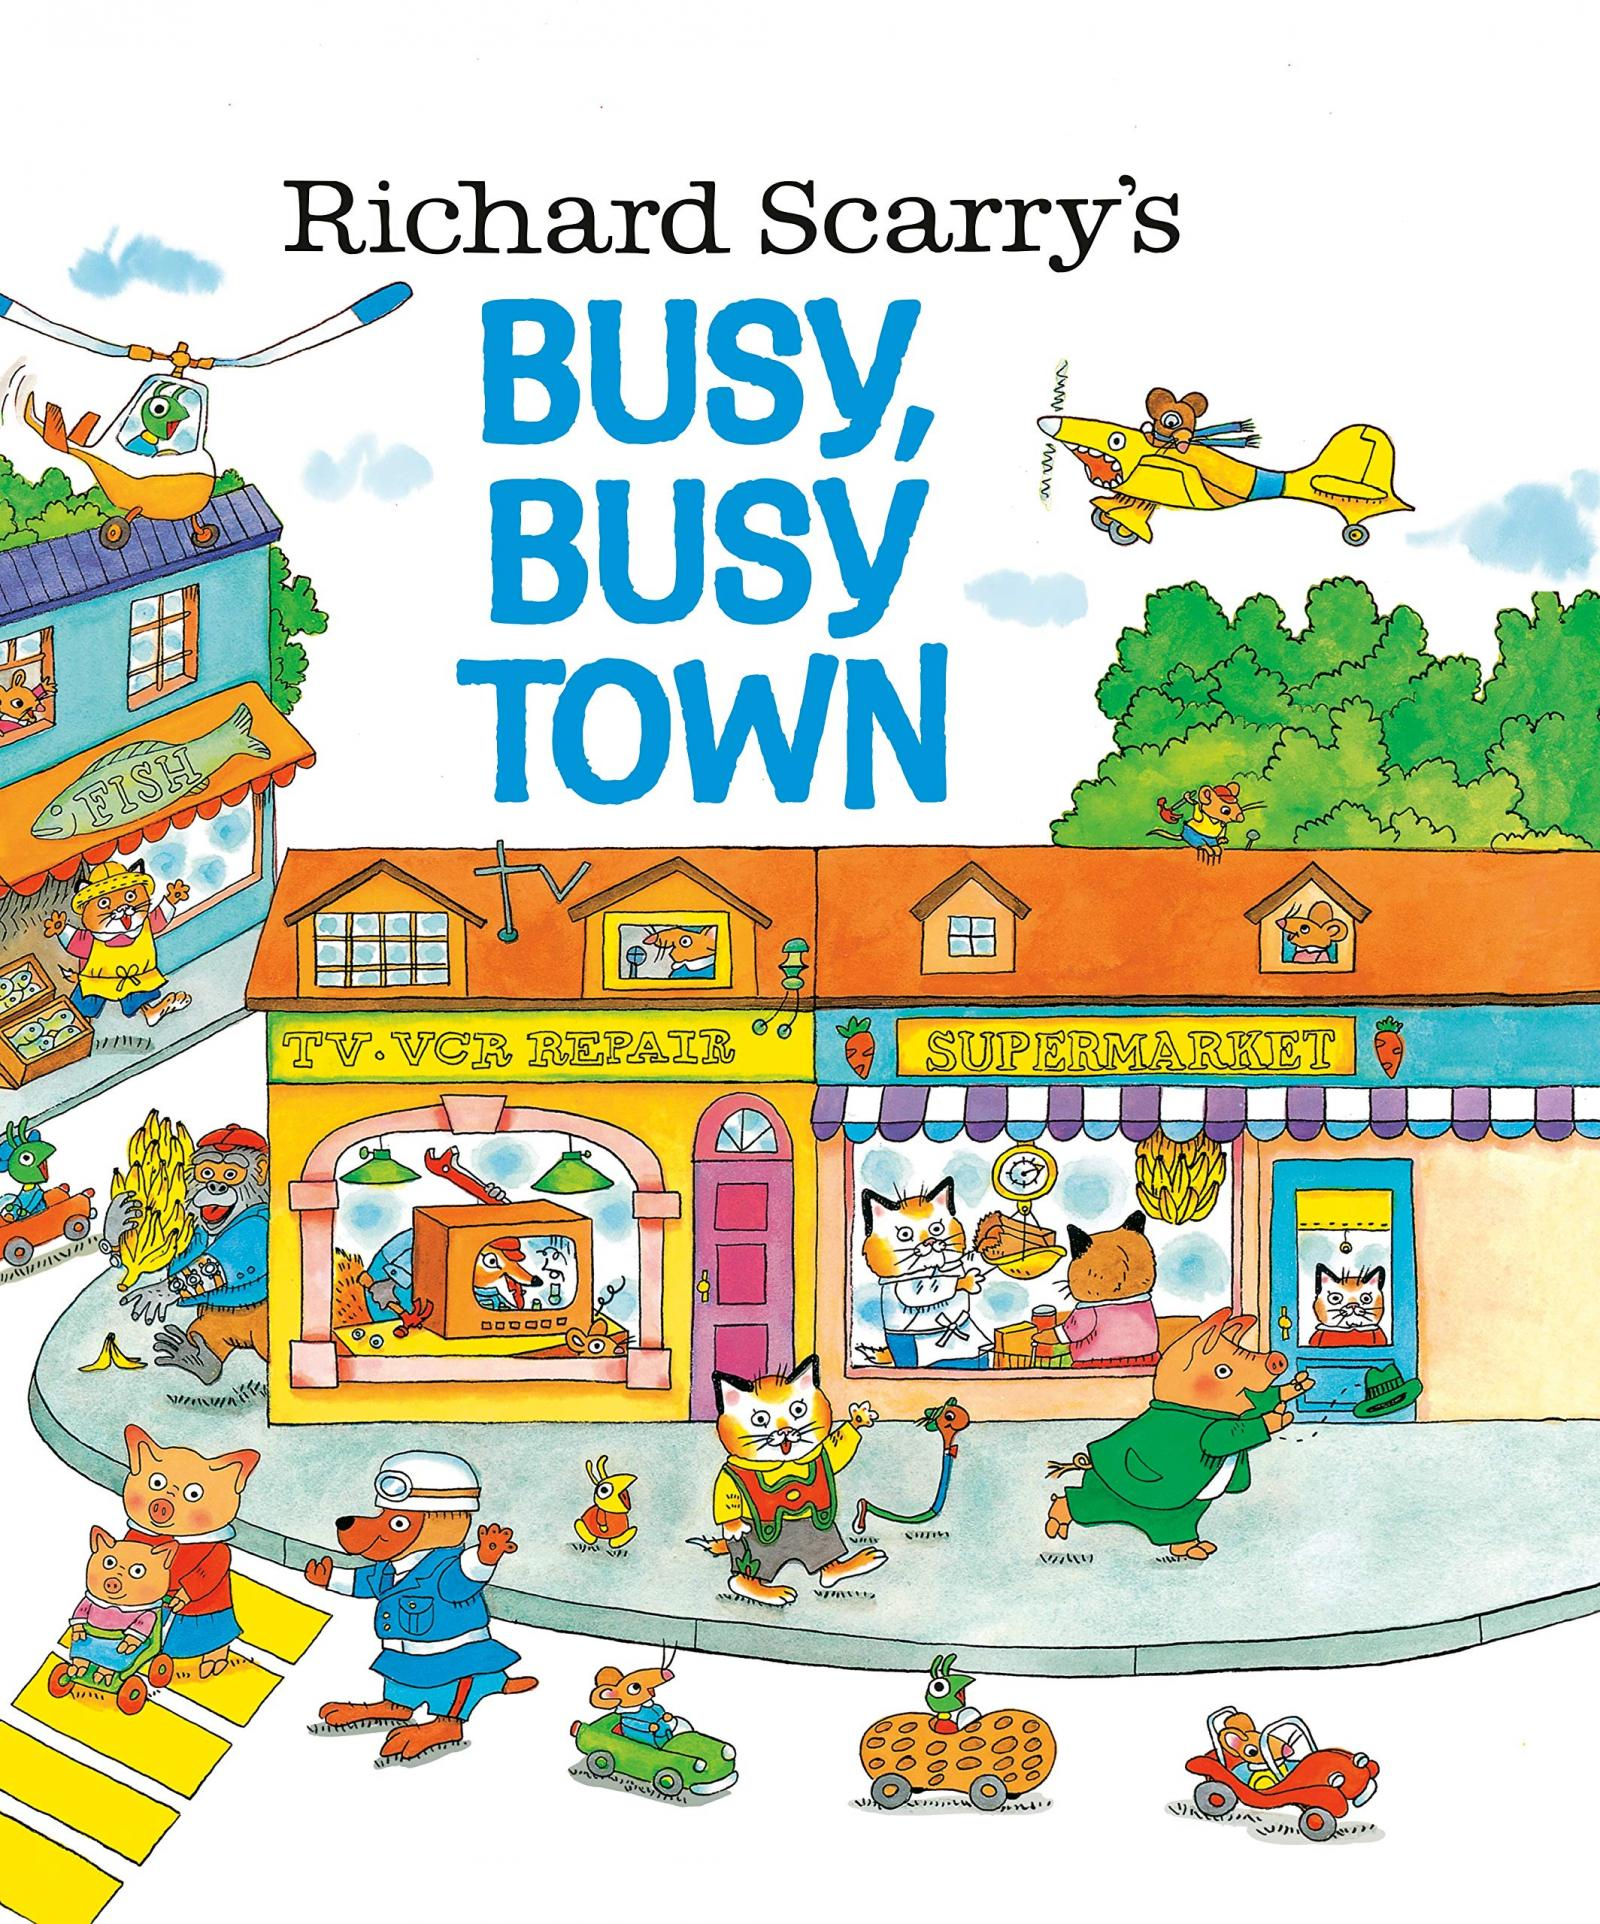 'Busy, Busy Town' by Richard Scarry